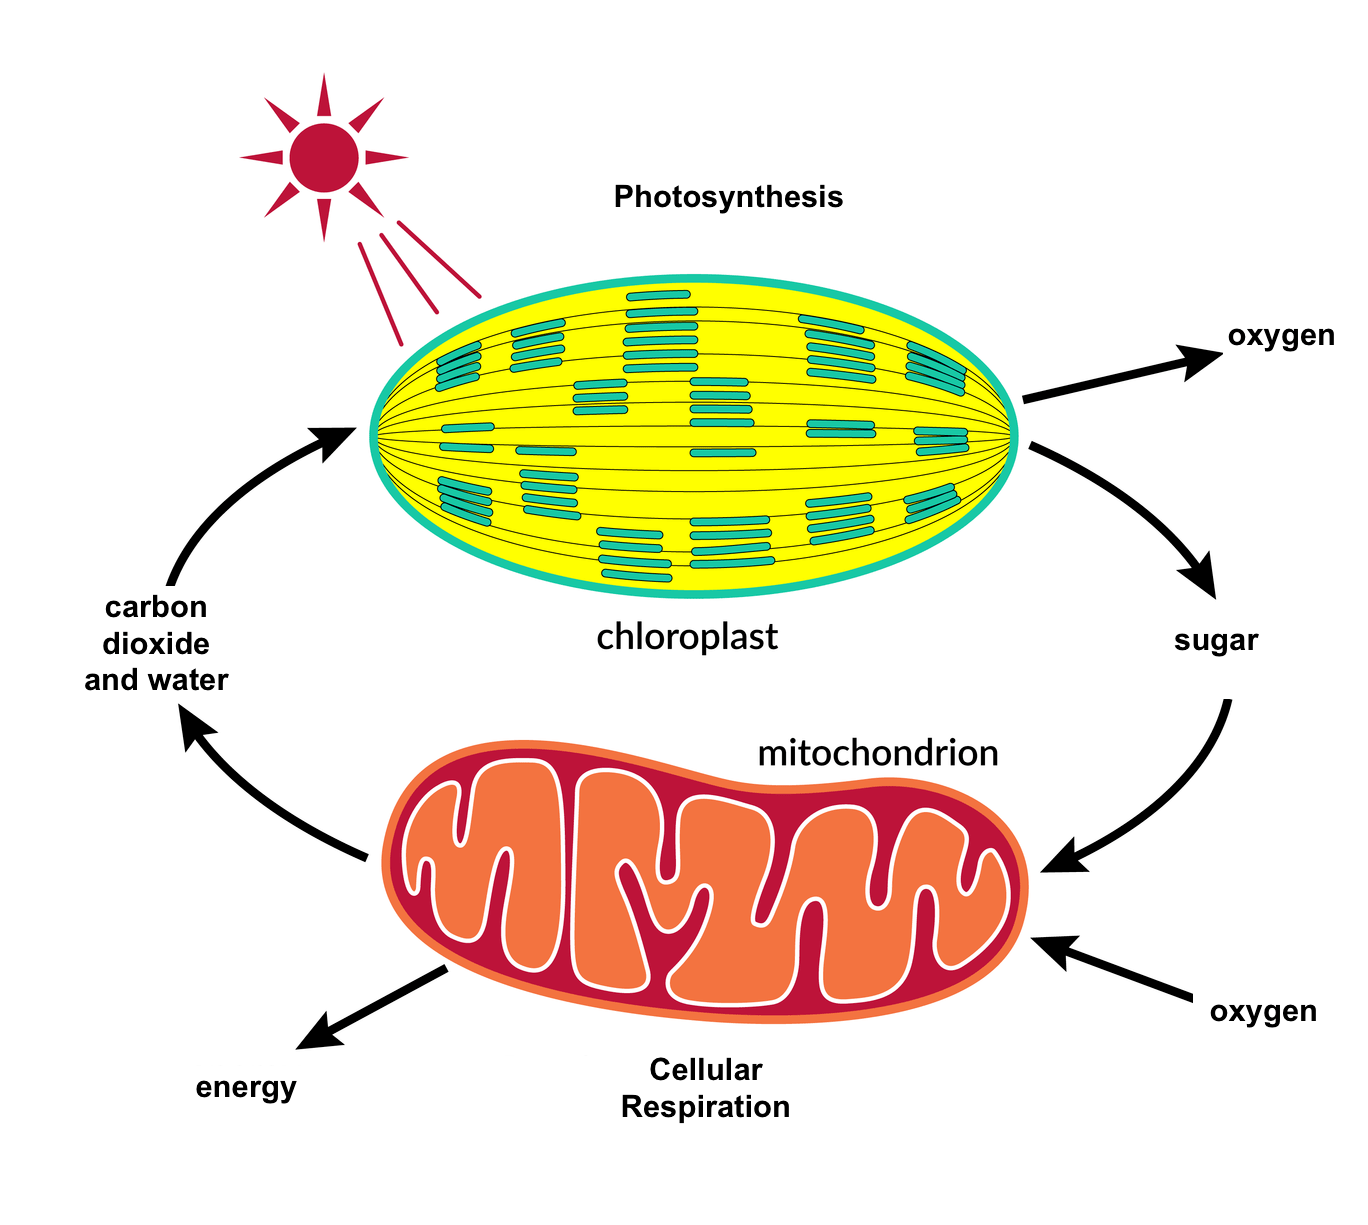 photosynthesis and cellular respiration cycle diagram 96 ford ranger radio wiring ngss life sciences the carbon